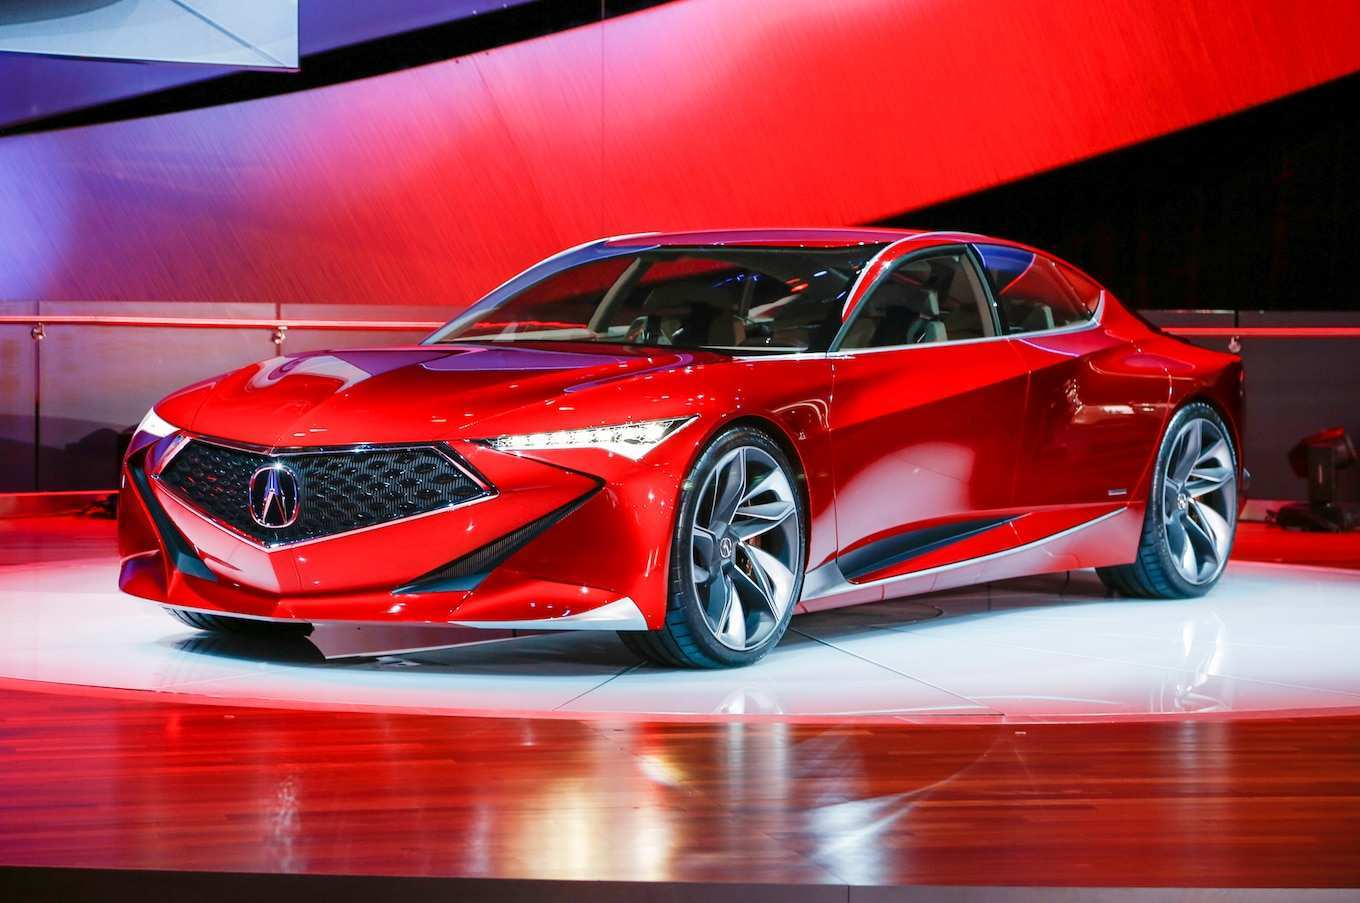 82 Best Review 2020 Acura Pebble Beach New Review by 2020 Acura Pebble Beach